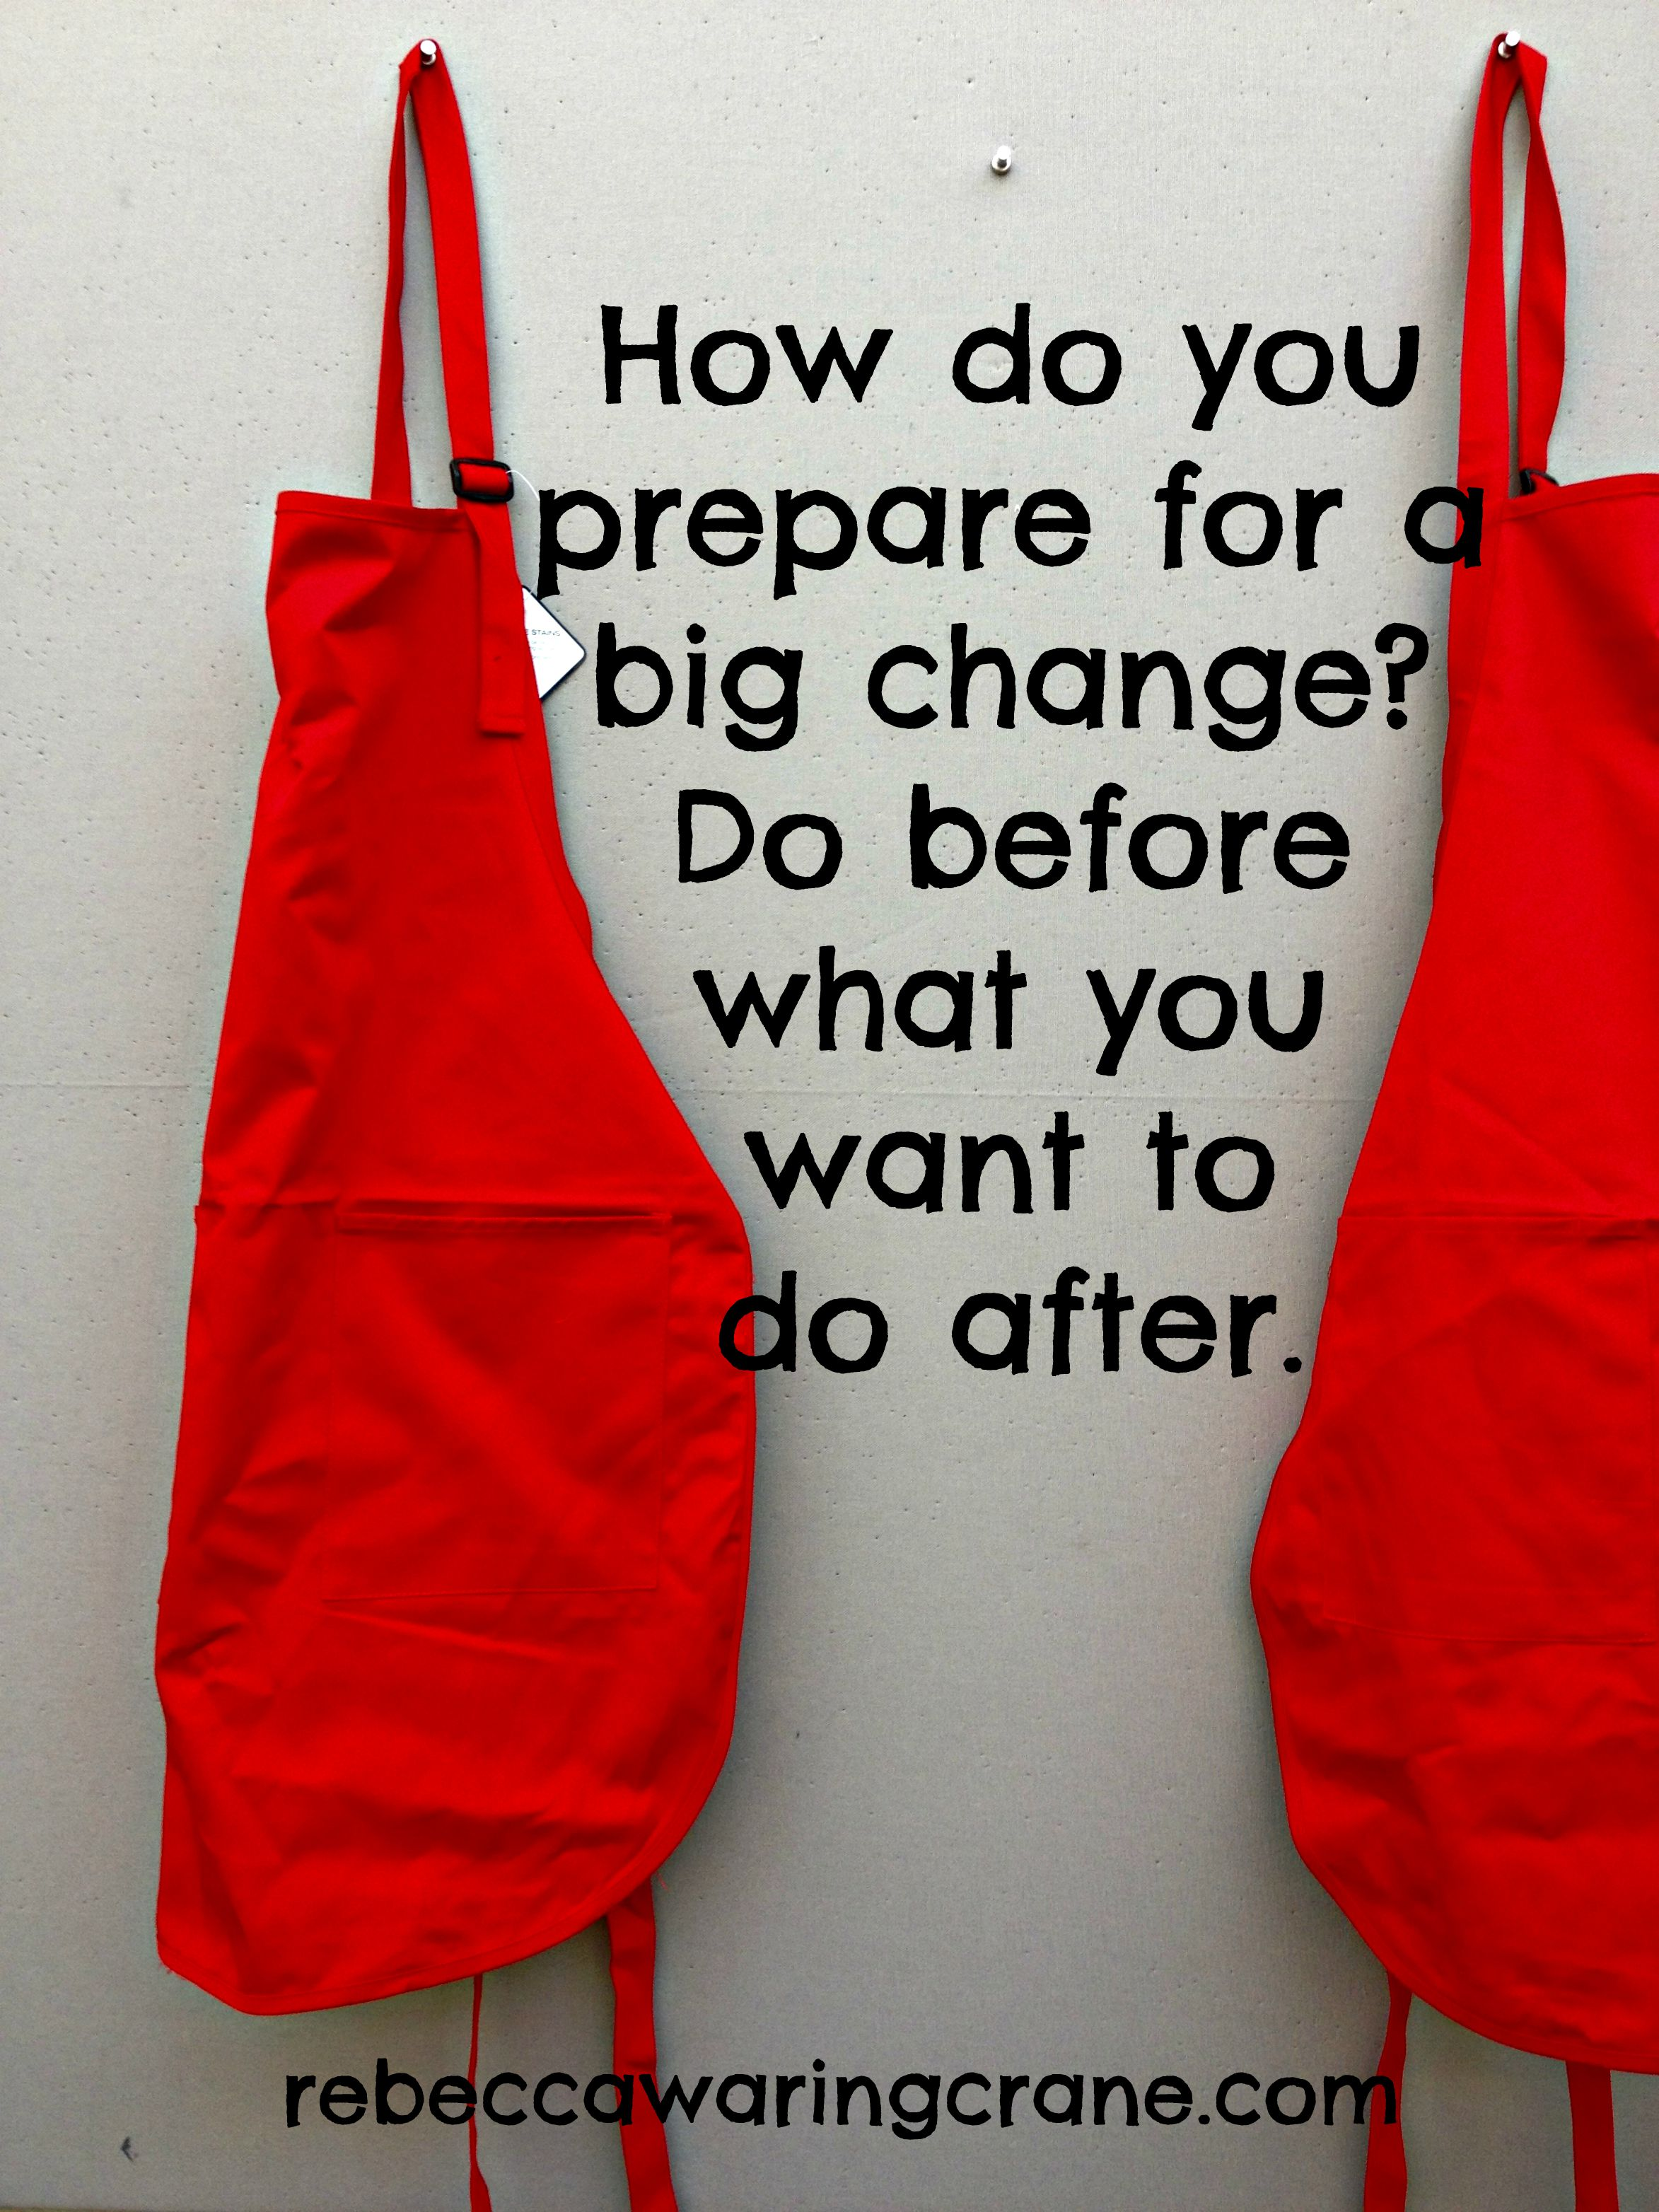 How do you prepare for big change?